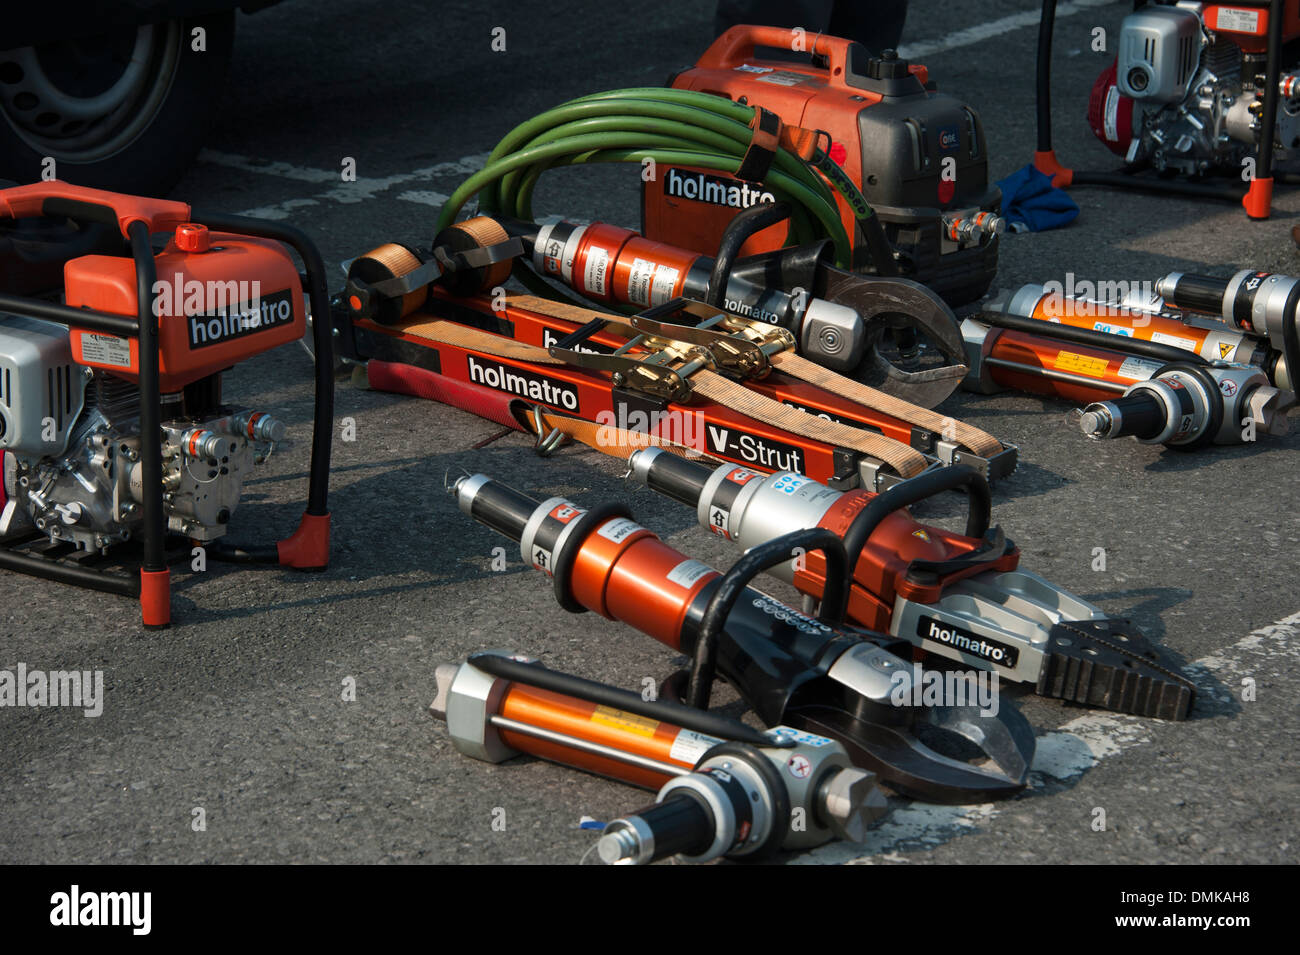 Holmatro Fire & Rescue Cutting Equipment Jaws of Life Stock Photo